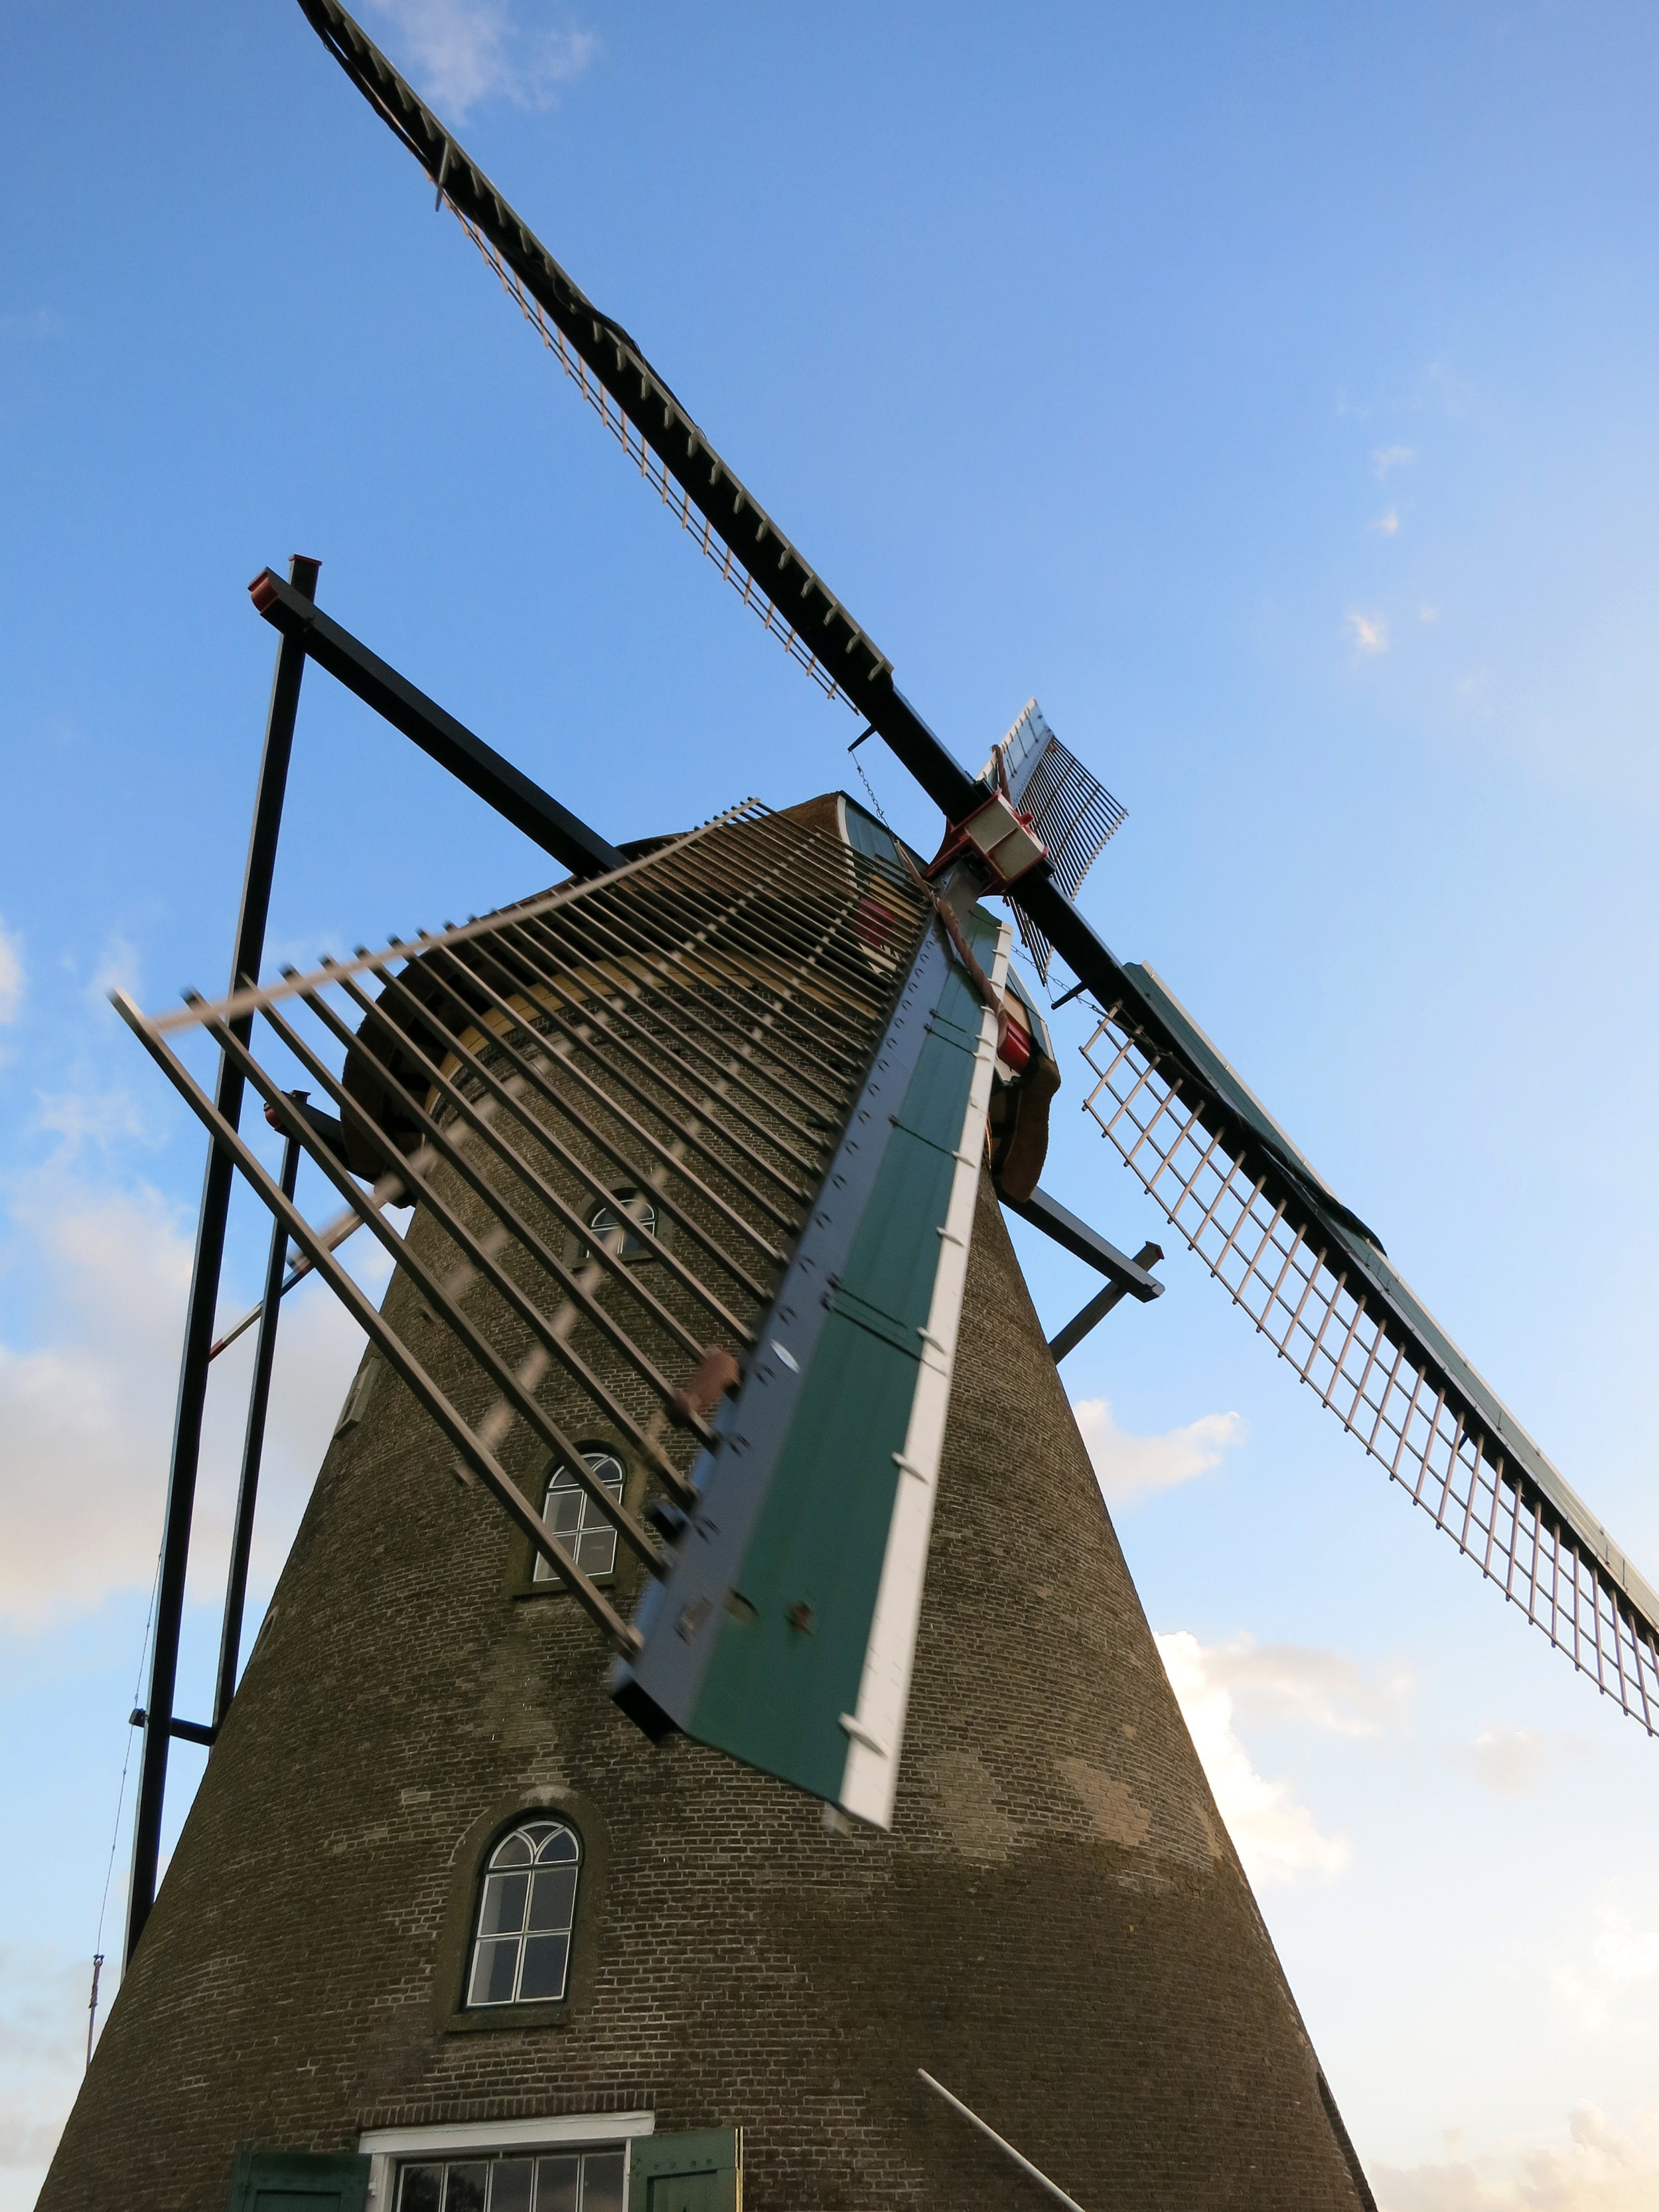 Kinderdijk - UNESCO World Heritage Site